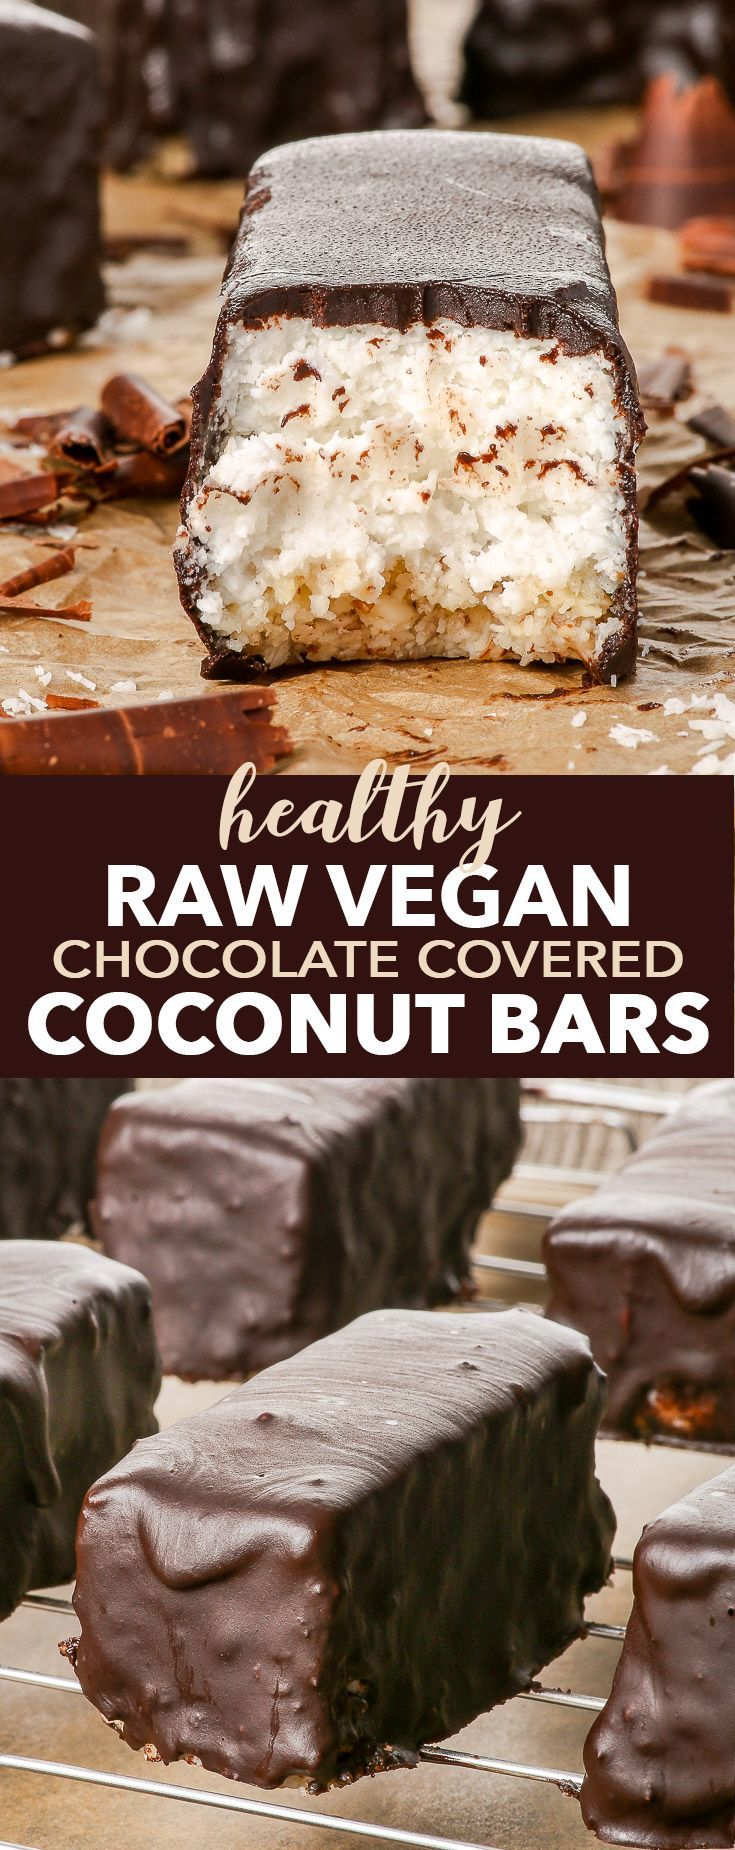 Raw Vegan Chocolate Covered Coconut Bars {gluten, dairy, egg, peanut, soy & ref. sugar free, vegan, paleo} - If you're a coconut fan, you'll love these raw vegan chocolate covered coconut bars. If you're not, you just might be converted. They are full of